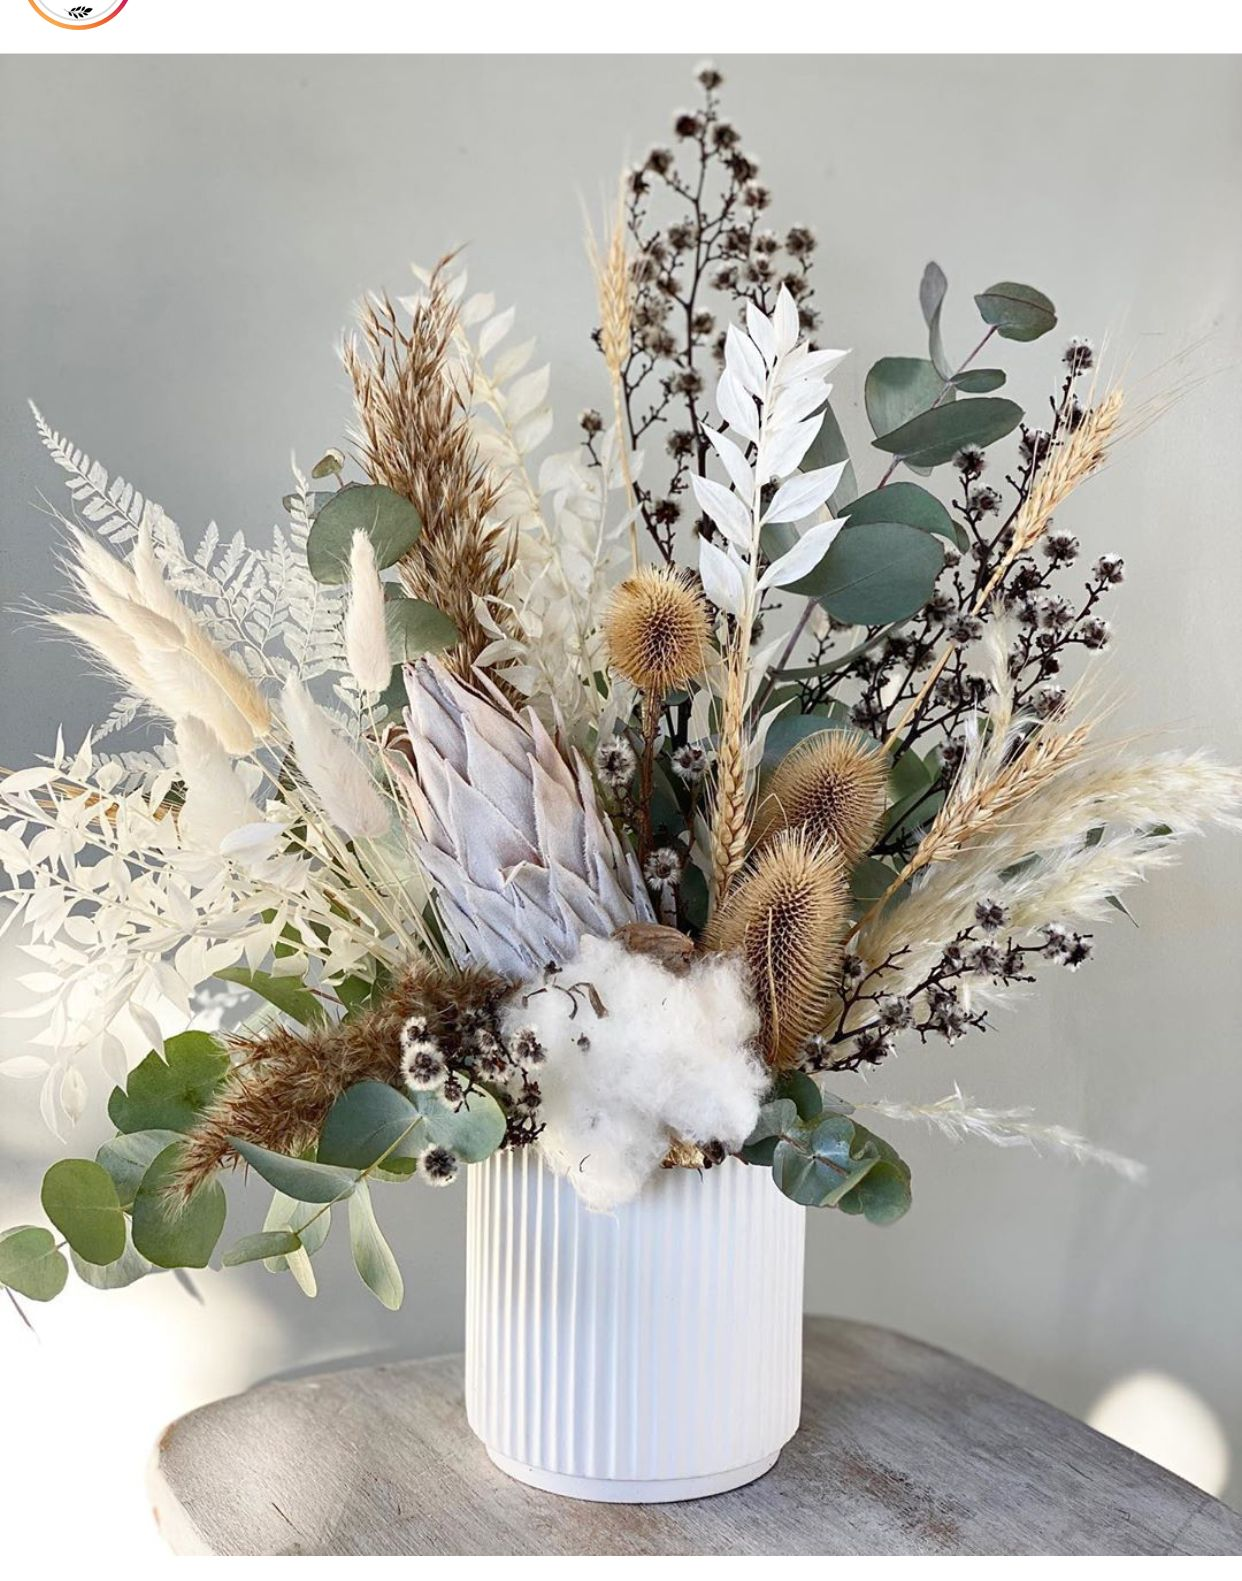 Pin By Anna On Florals In 2020 Dried Flower Arrangements Dried Floral Dried Flowers